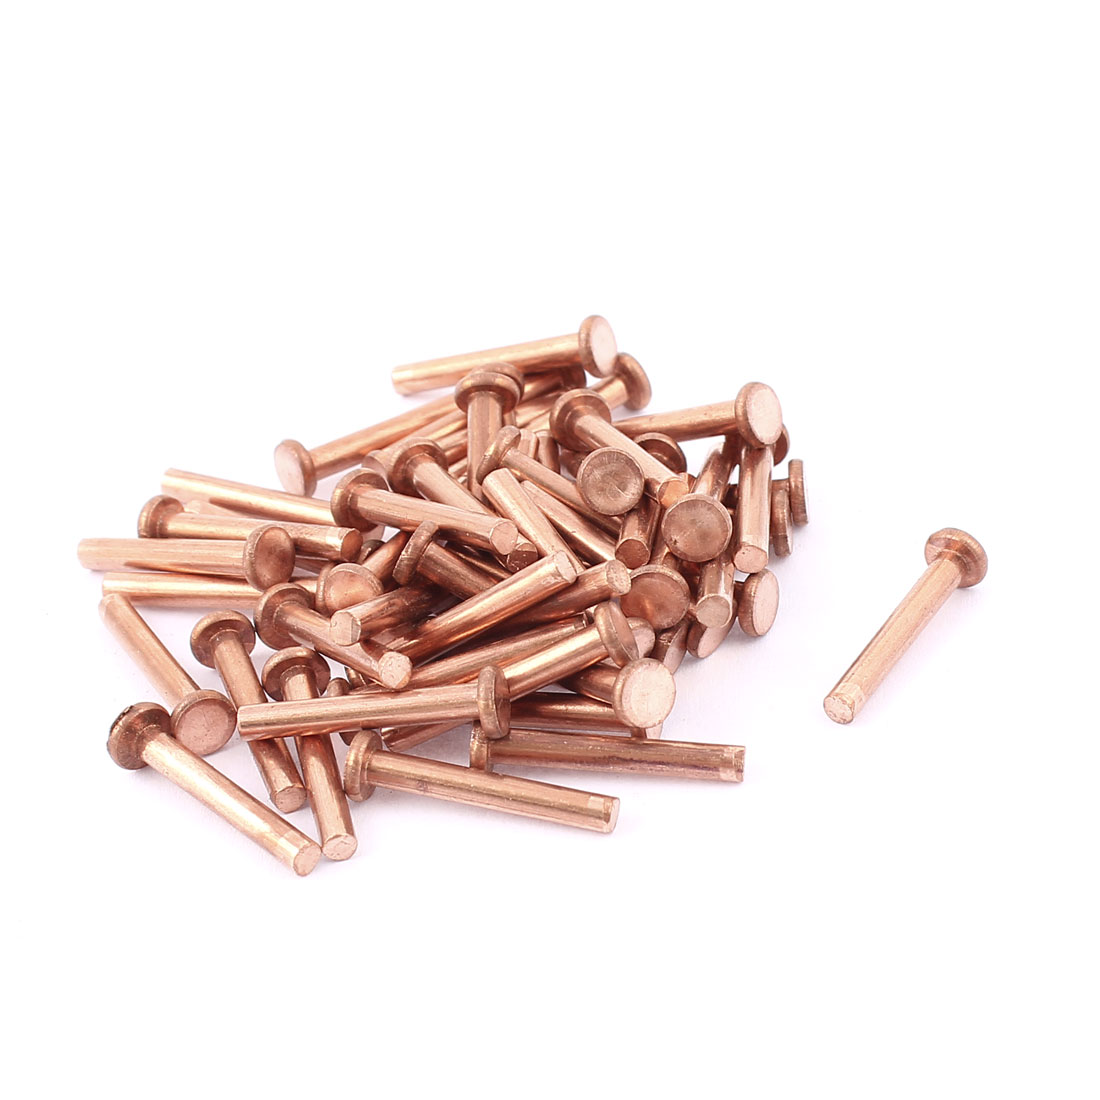 "50 Pcs 1/8"" Diameter 25/32"" Long Shank Flat Head Bolts Copper Solid Rivets Fasteners"